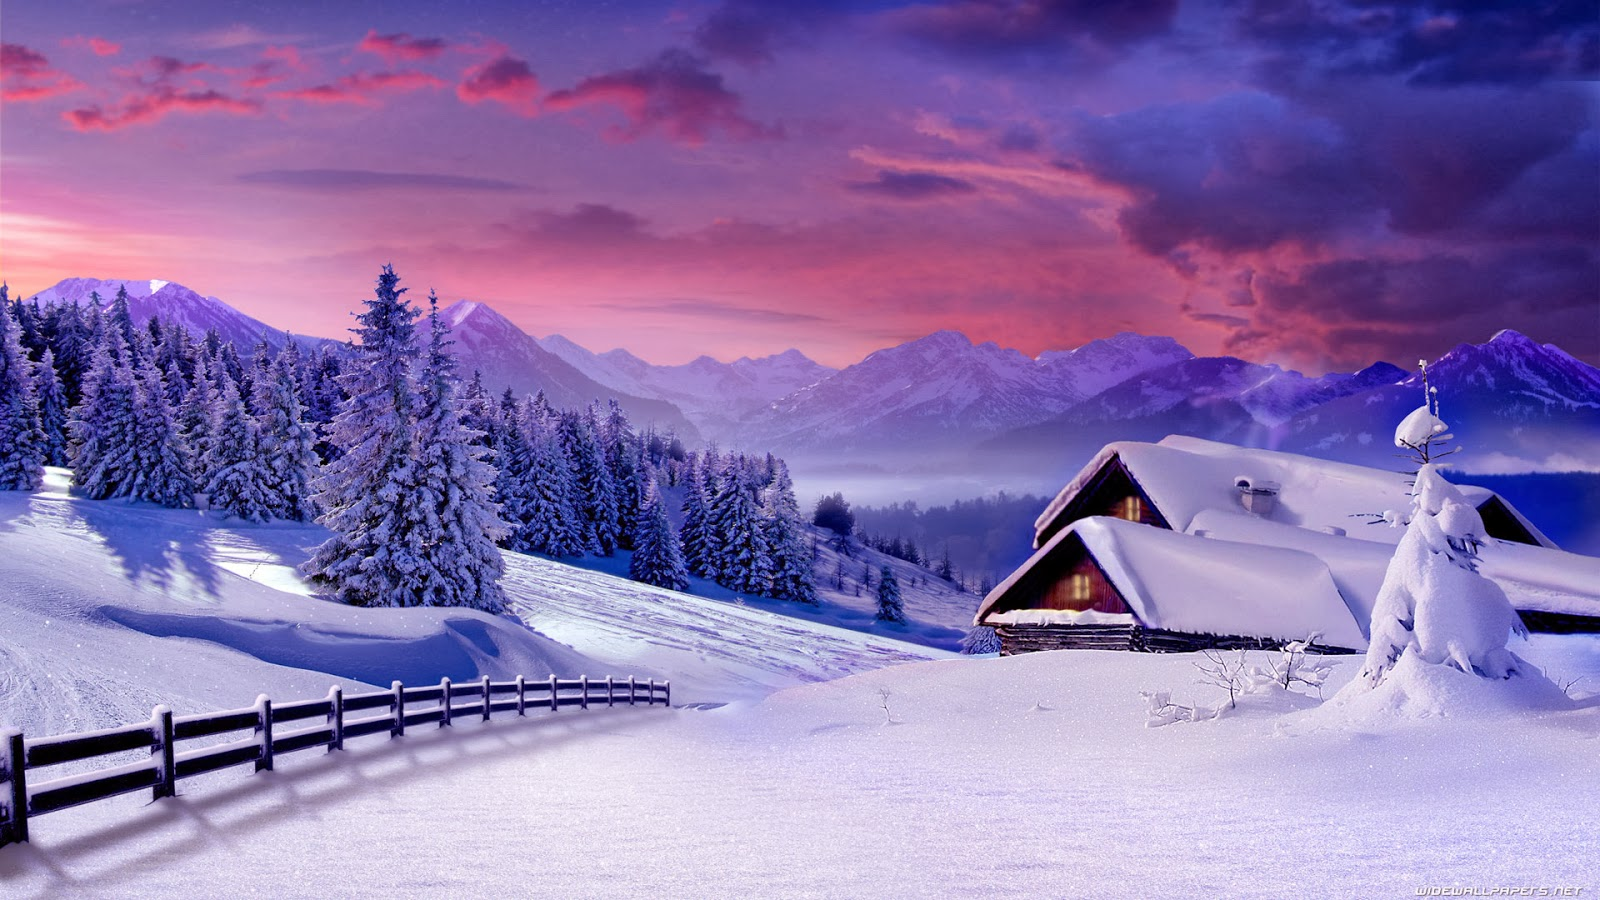 Desktop Backgrounds 4U Winter Scenes